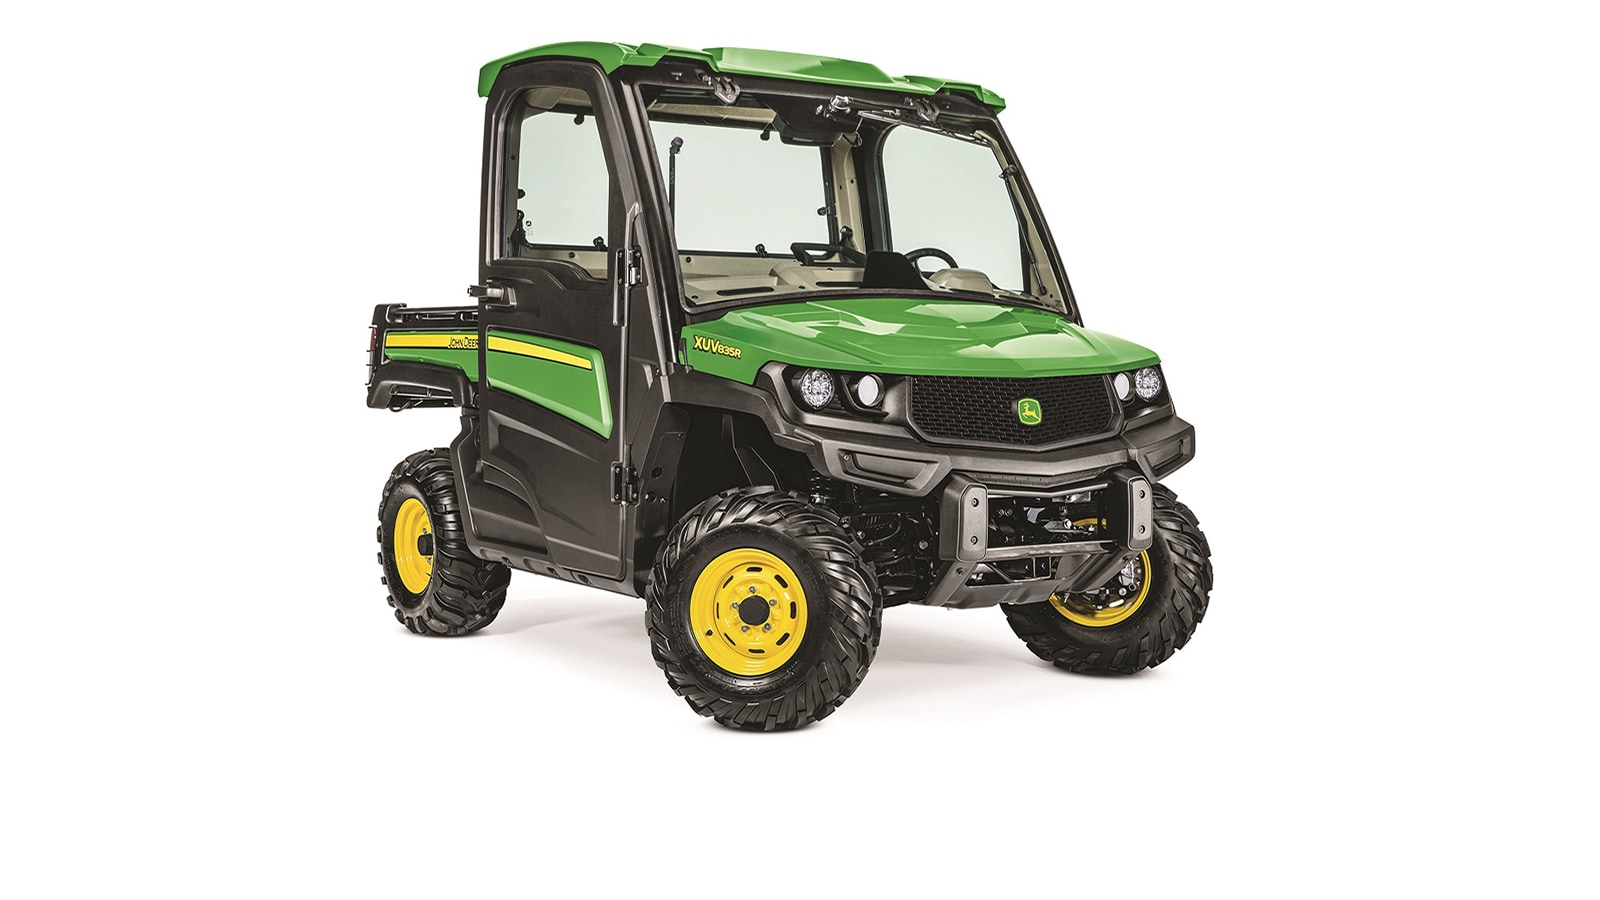 john deere introduces new gator xuv models. Black Bedroom Furniture Sets. Home Design Ideas